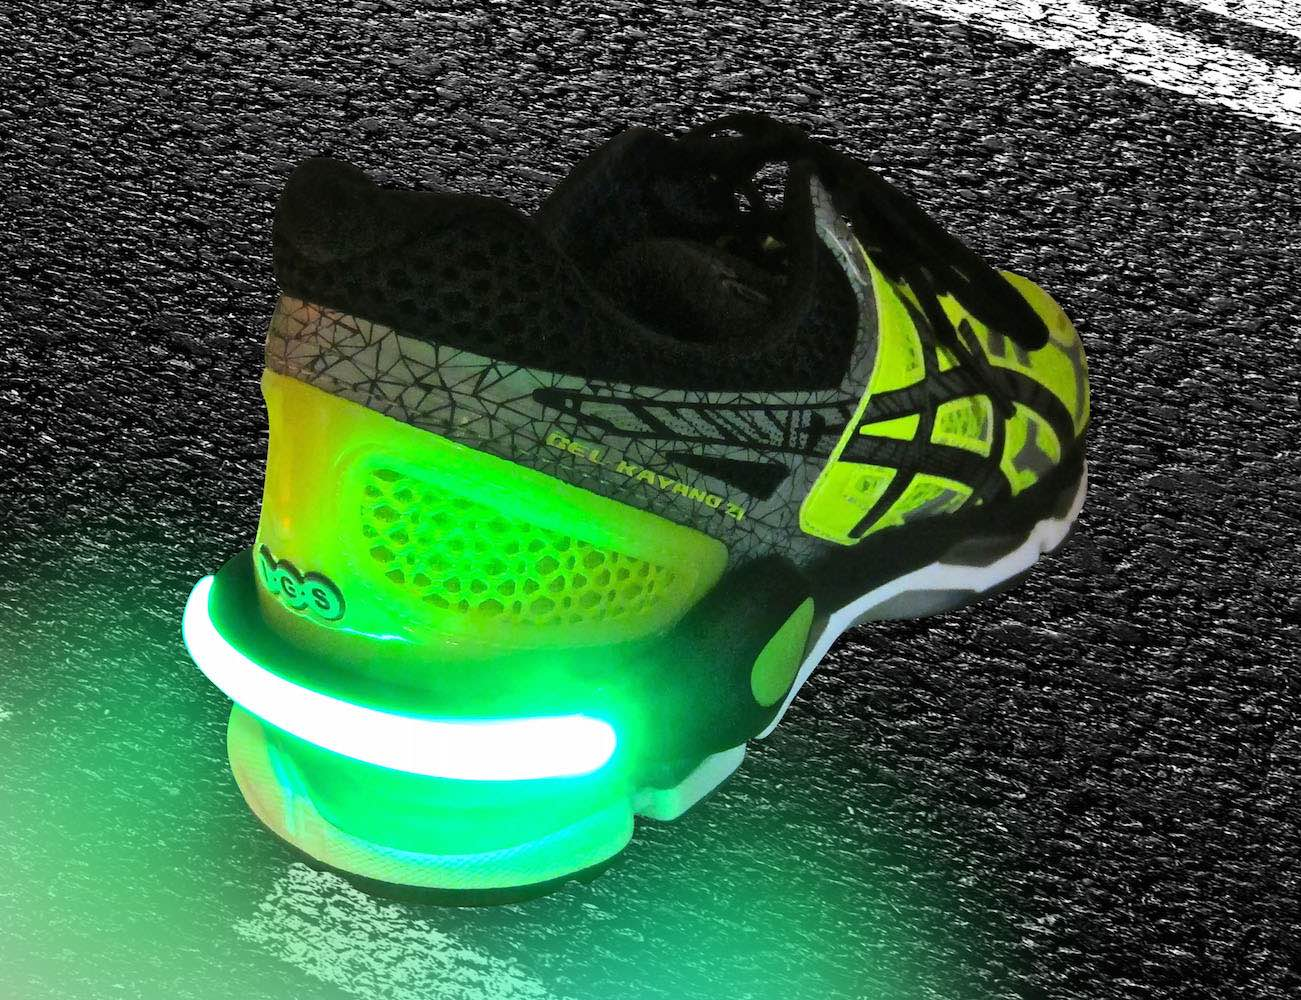 FireFly Running & Biking Light Spurs